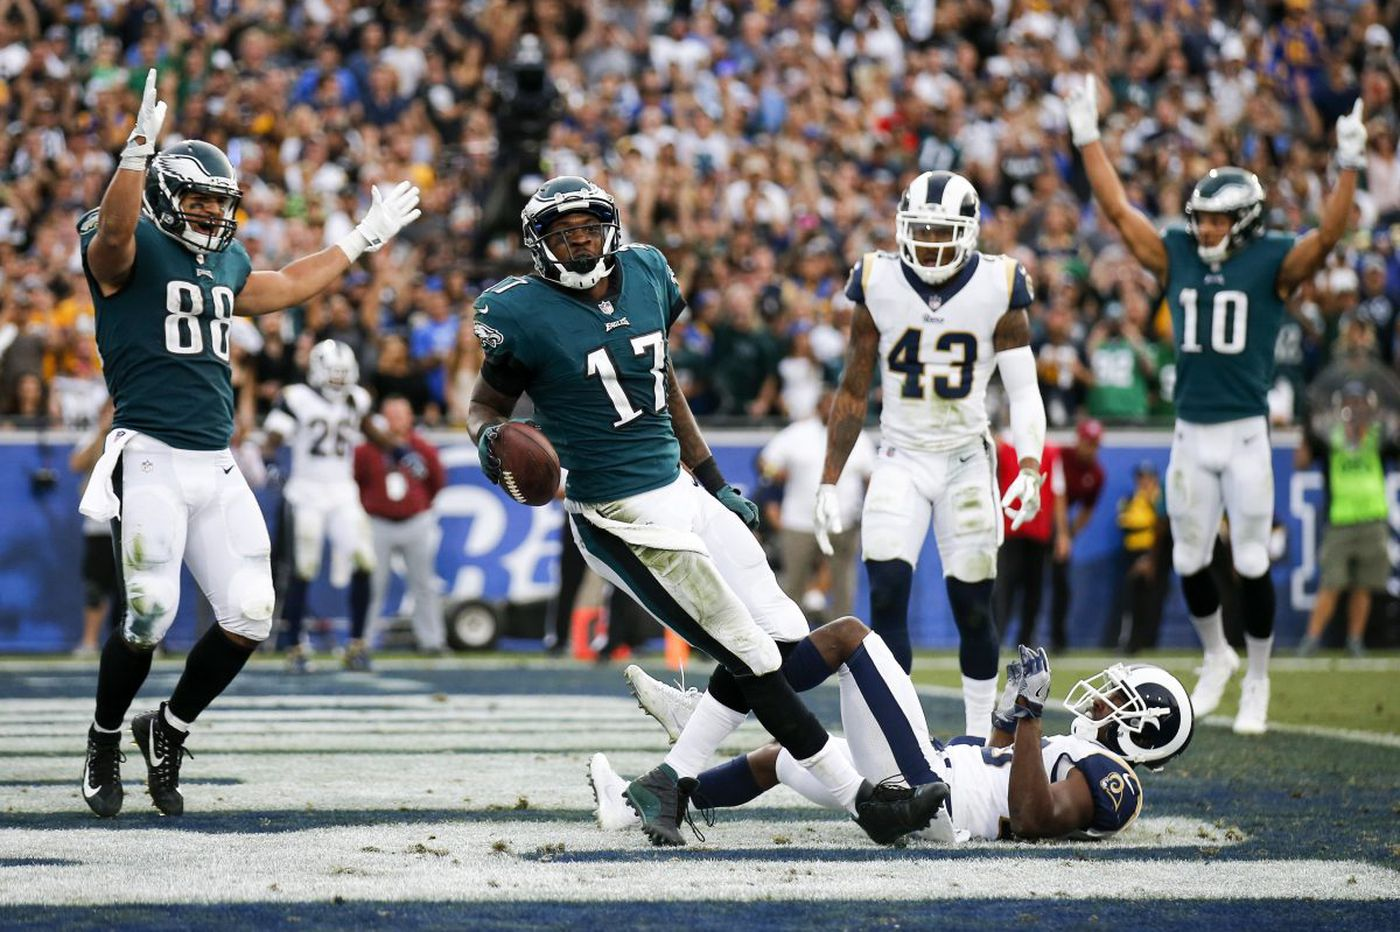 Carson Wentz isn't invincible: What we learned from the Eagles' 43-35 win over the Rams | Jeff McLane